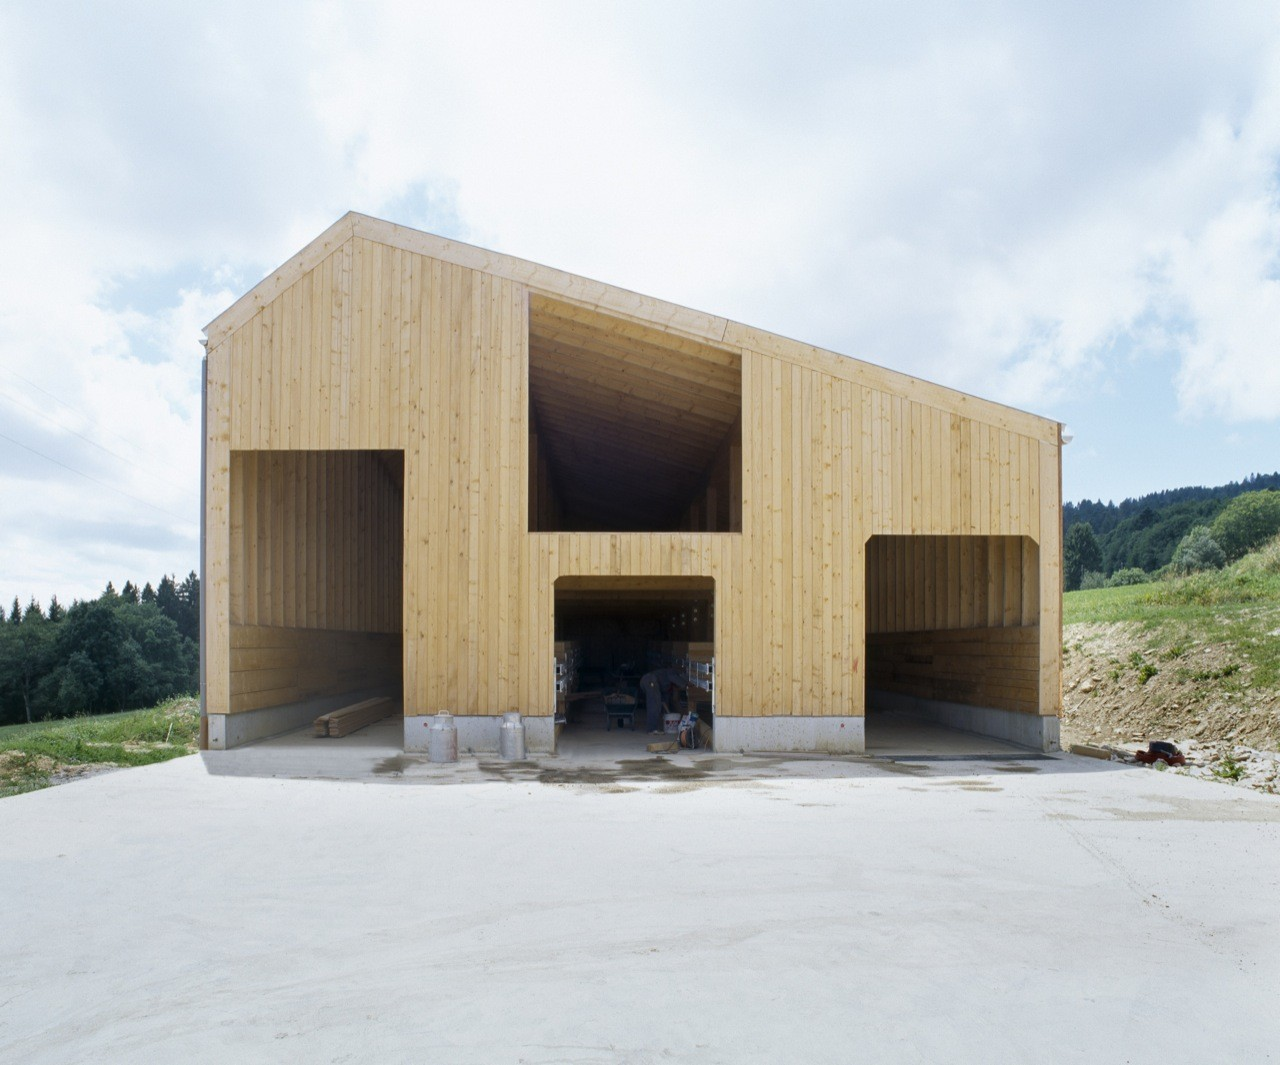 Etable De Stabulation Libre / LOCALARCHITECTURE, Courtesy of LOCALARCHITECTURE